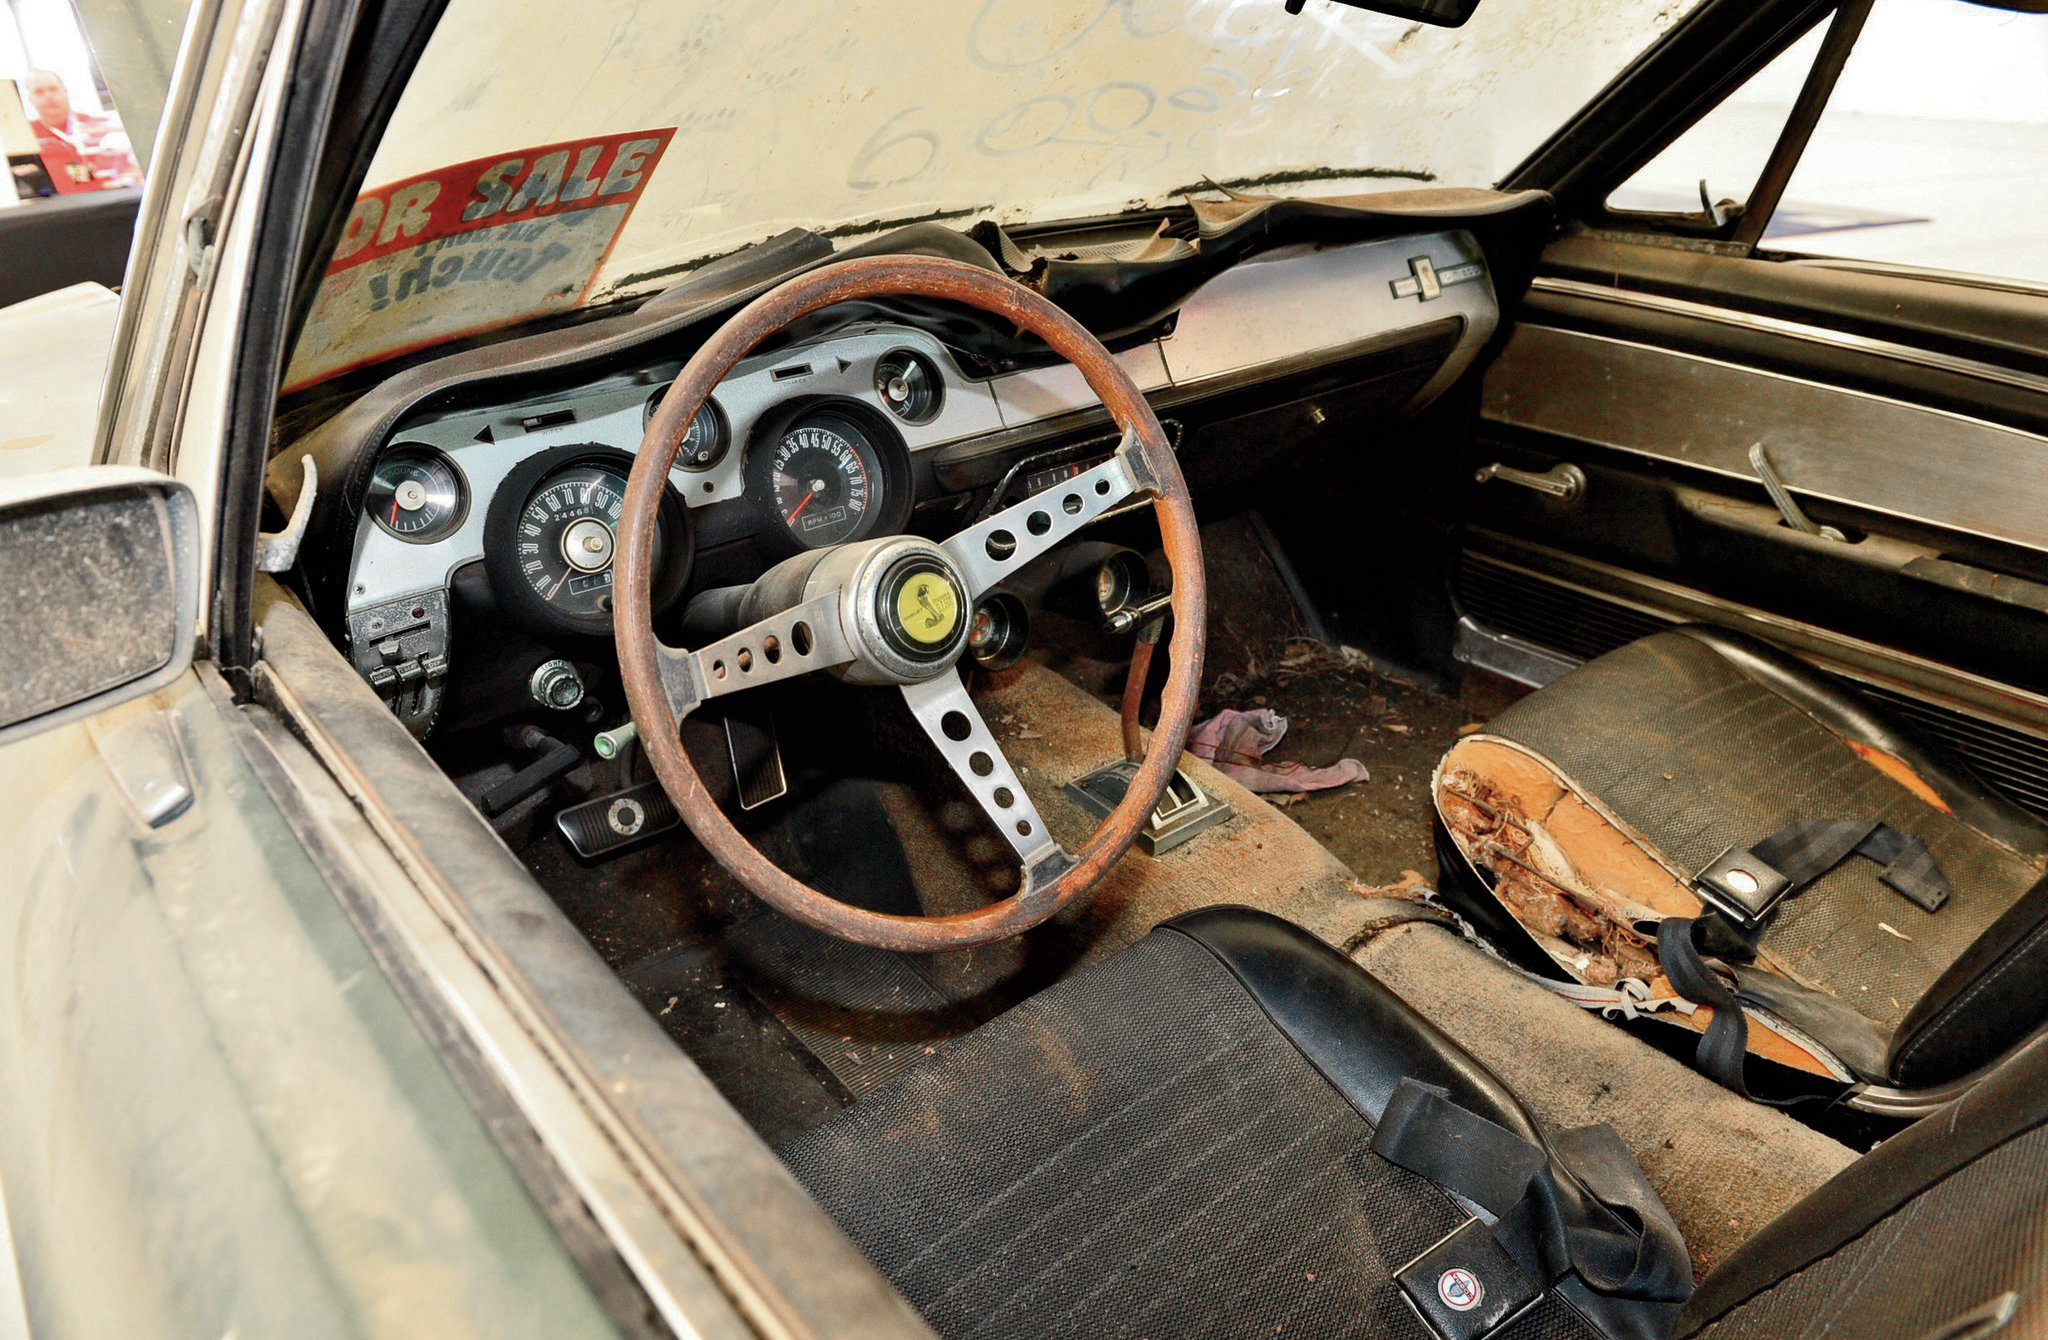 The interior is complete, including the wood-spoke Shelby steering wheel and Shelby gauge cluster. It could use new carpet and upholstery.